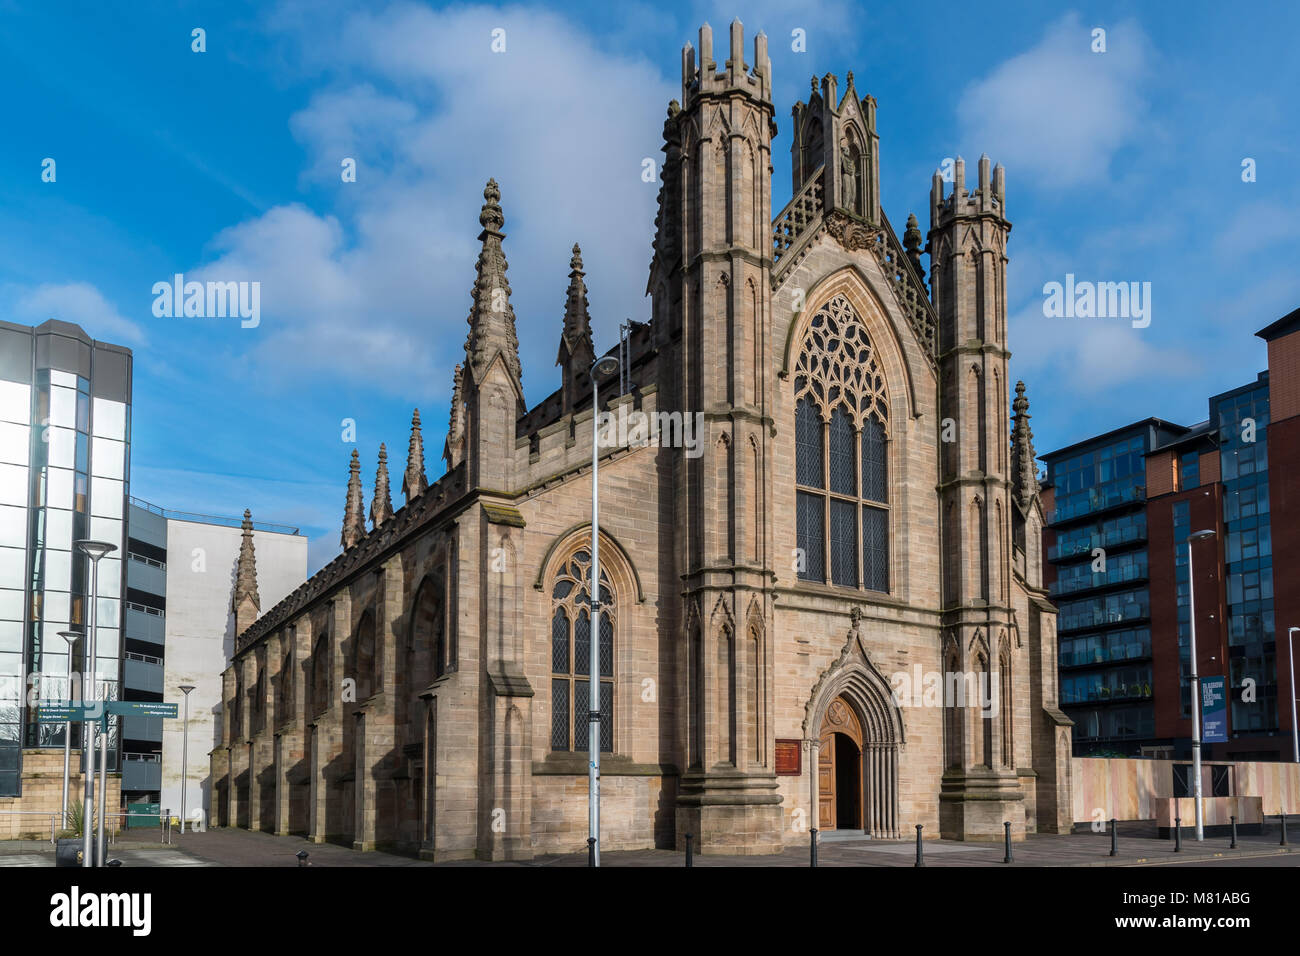 St Andrew's Cathedral in Glasgow - Stock Image